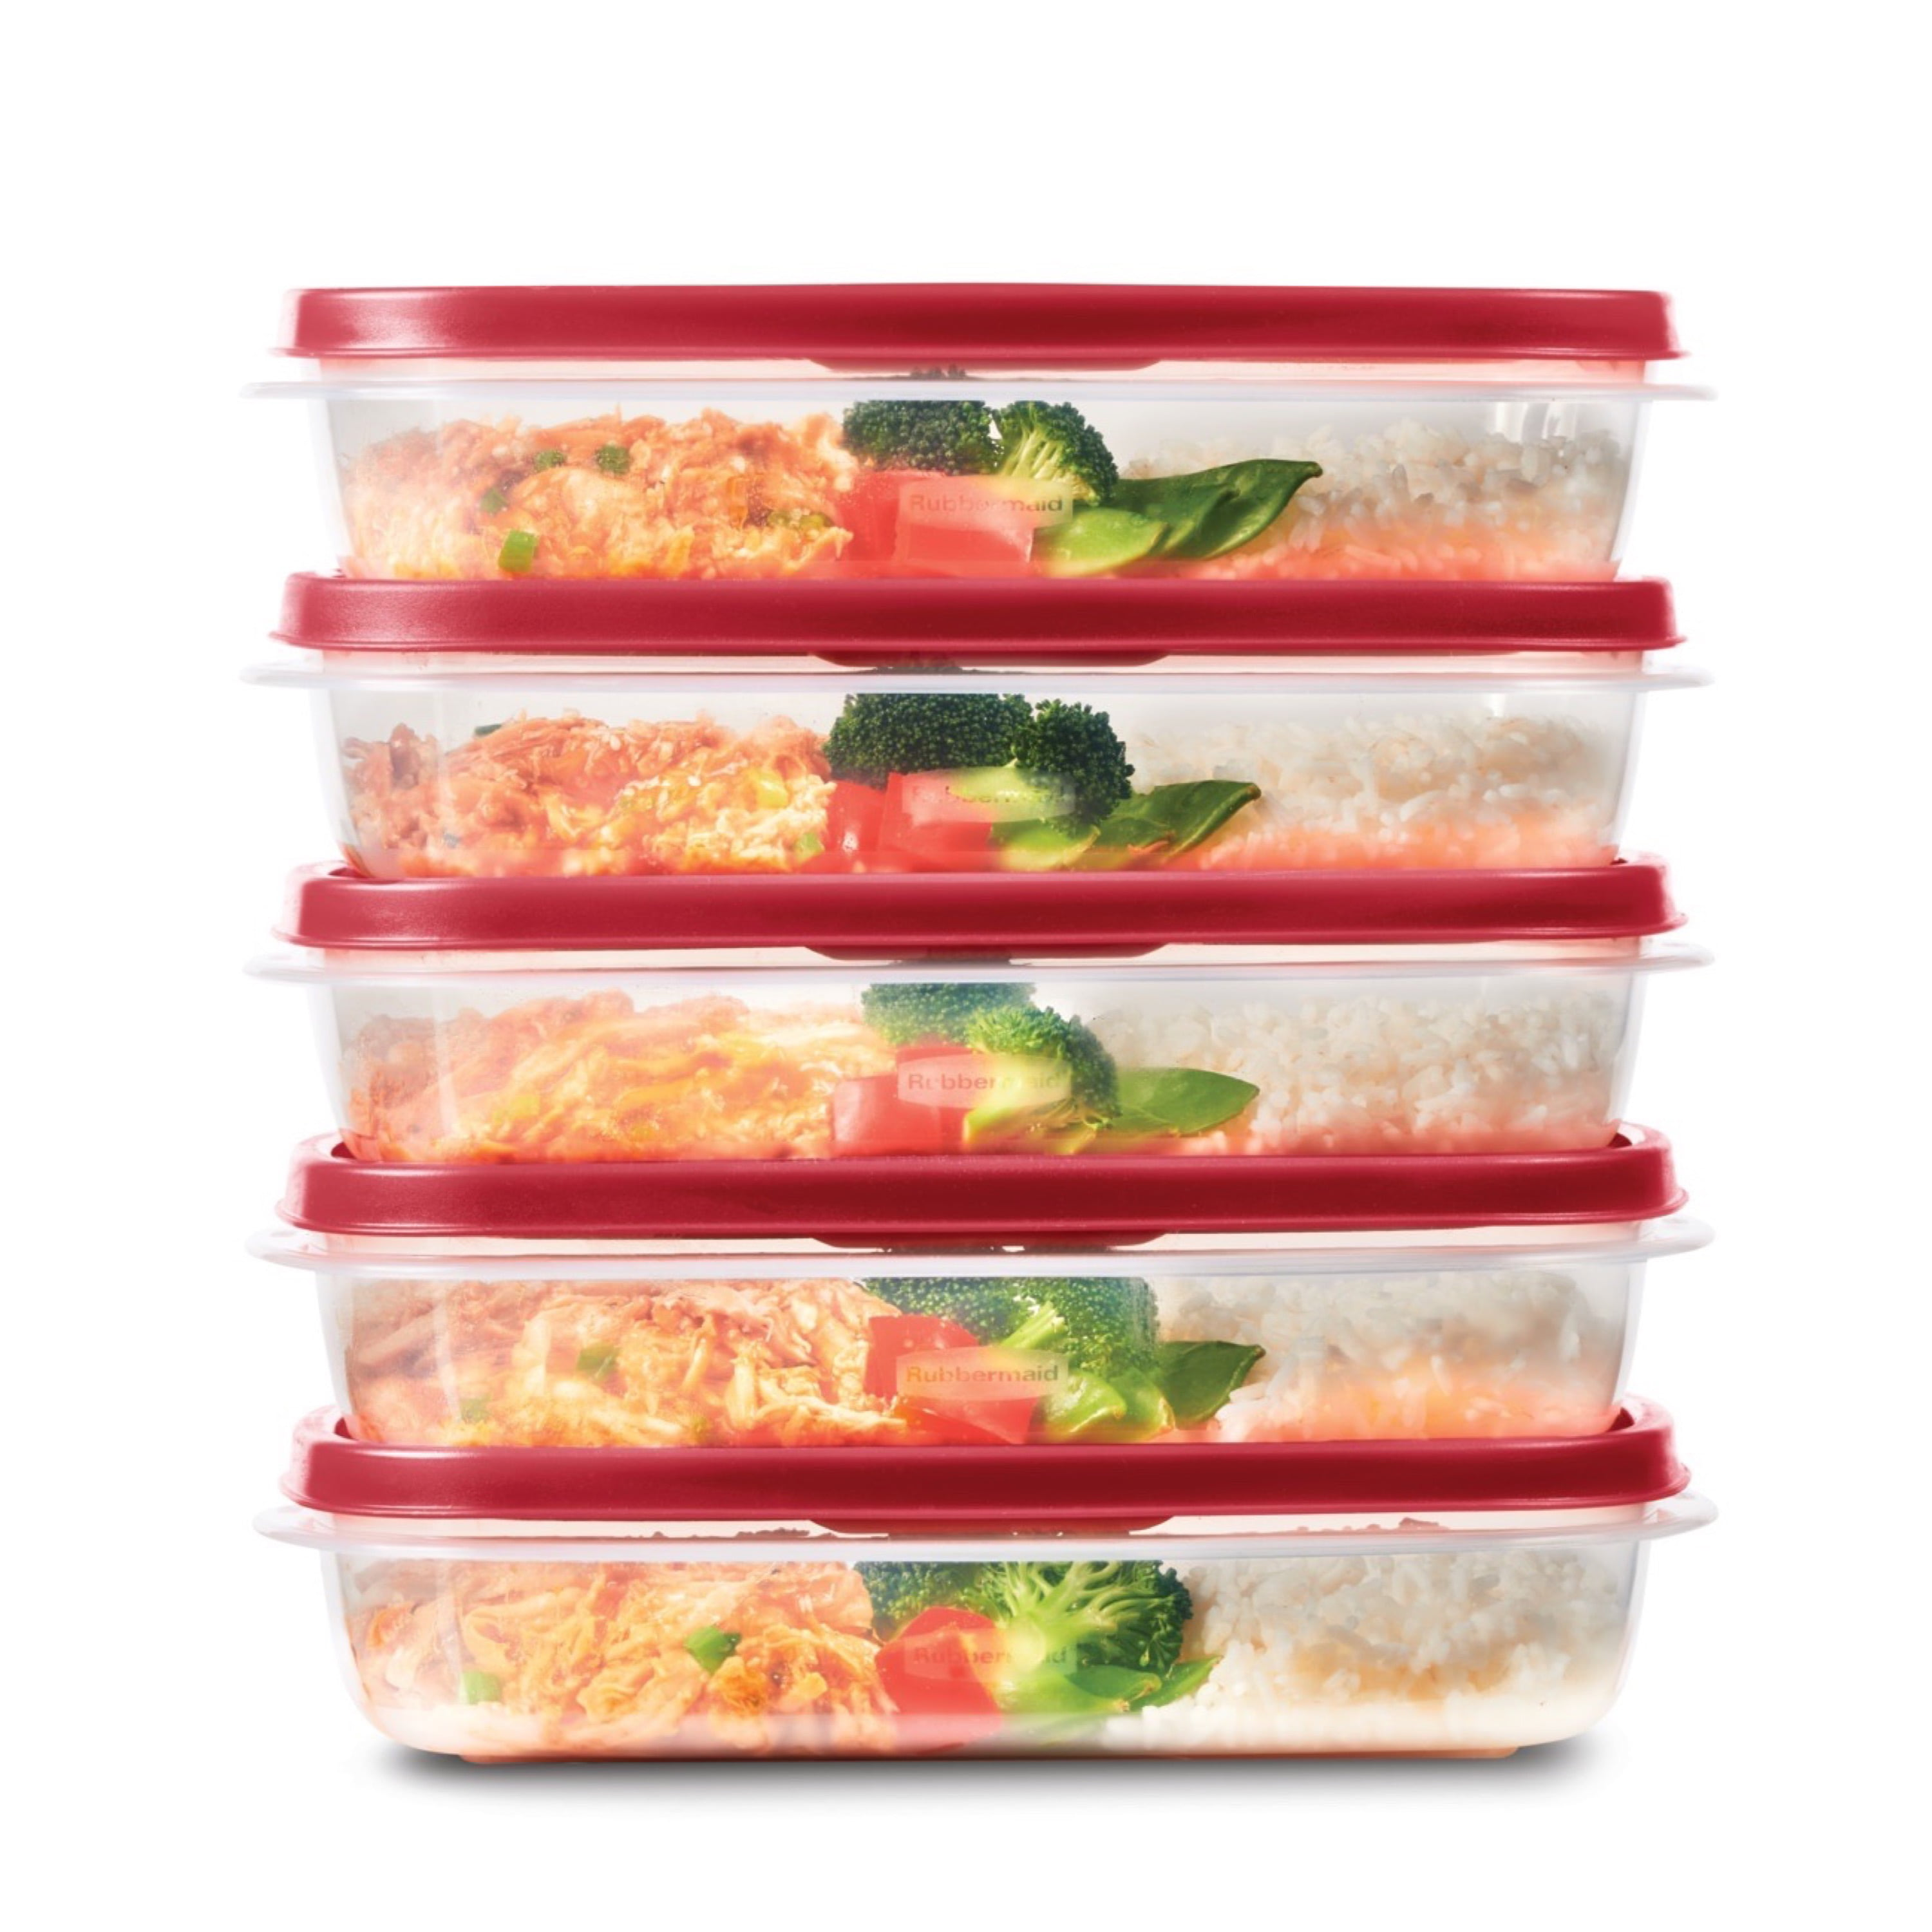 Details about  /50 Pack BPA Free Food Grade Meal Prep Deli Storage Freezer Containers w// Lids